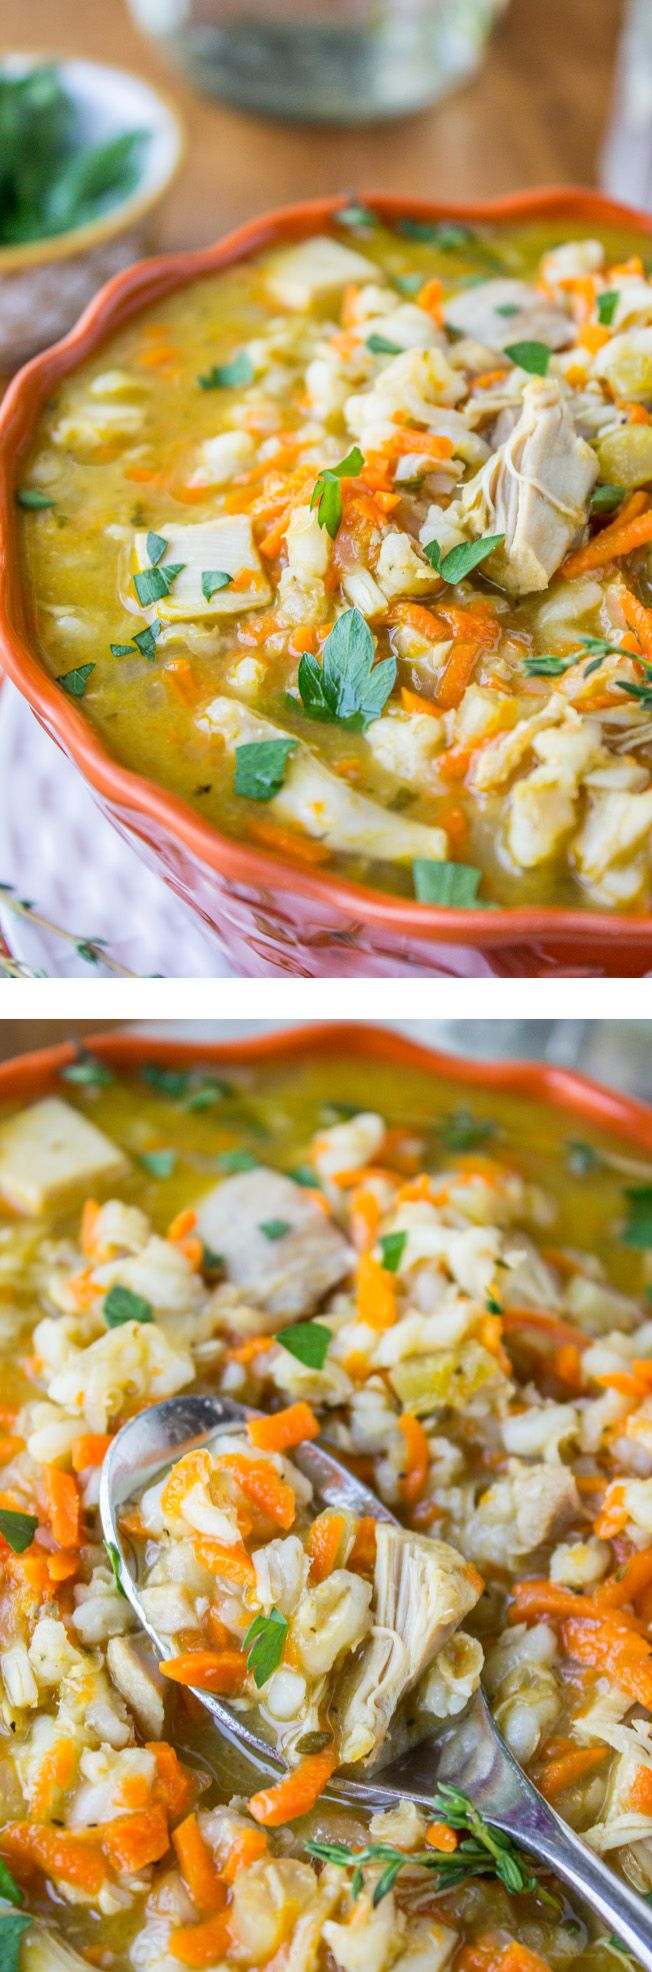 Turkey Barley Soup - Great Healthy Recipe Idea For Thanksgiving Leftovers (Slow Cooker)